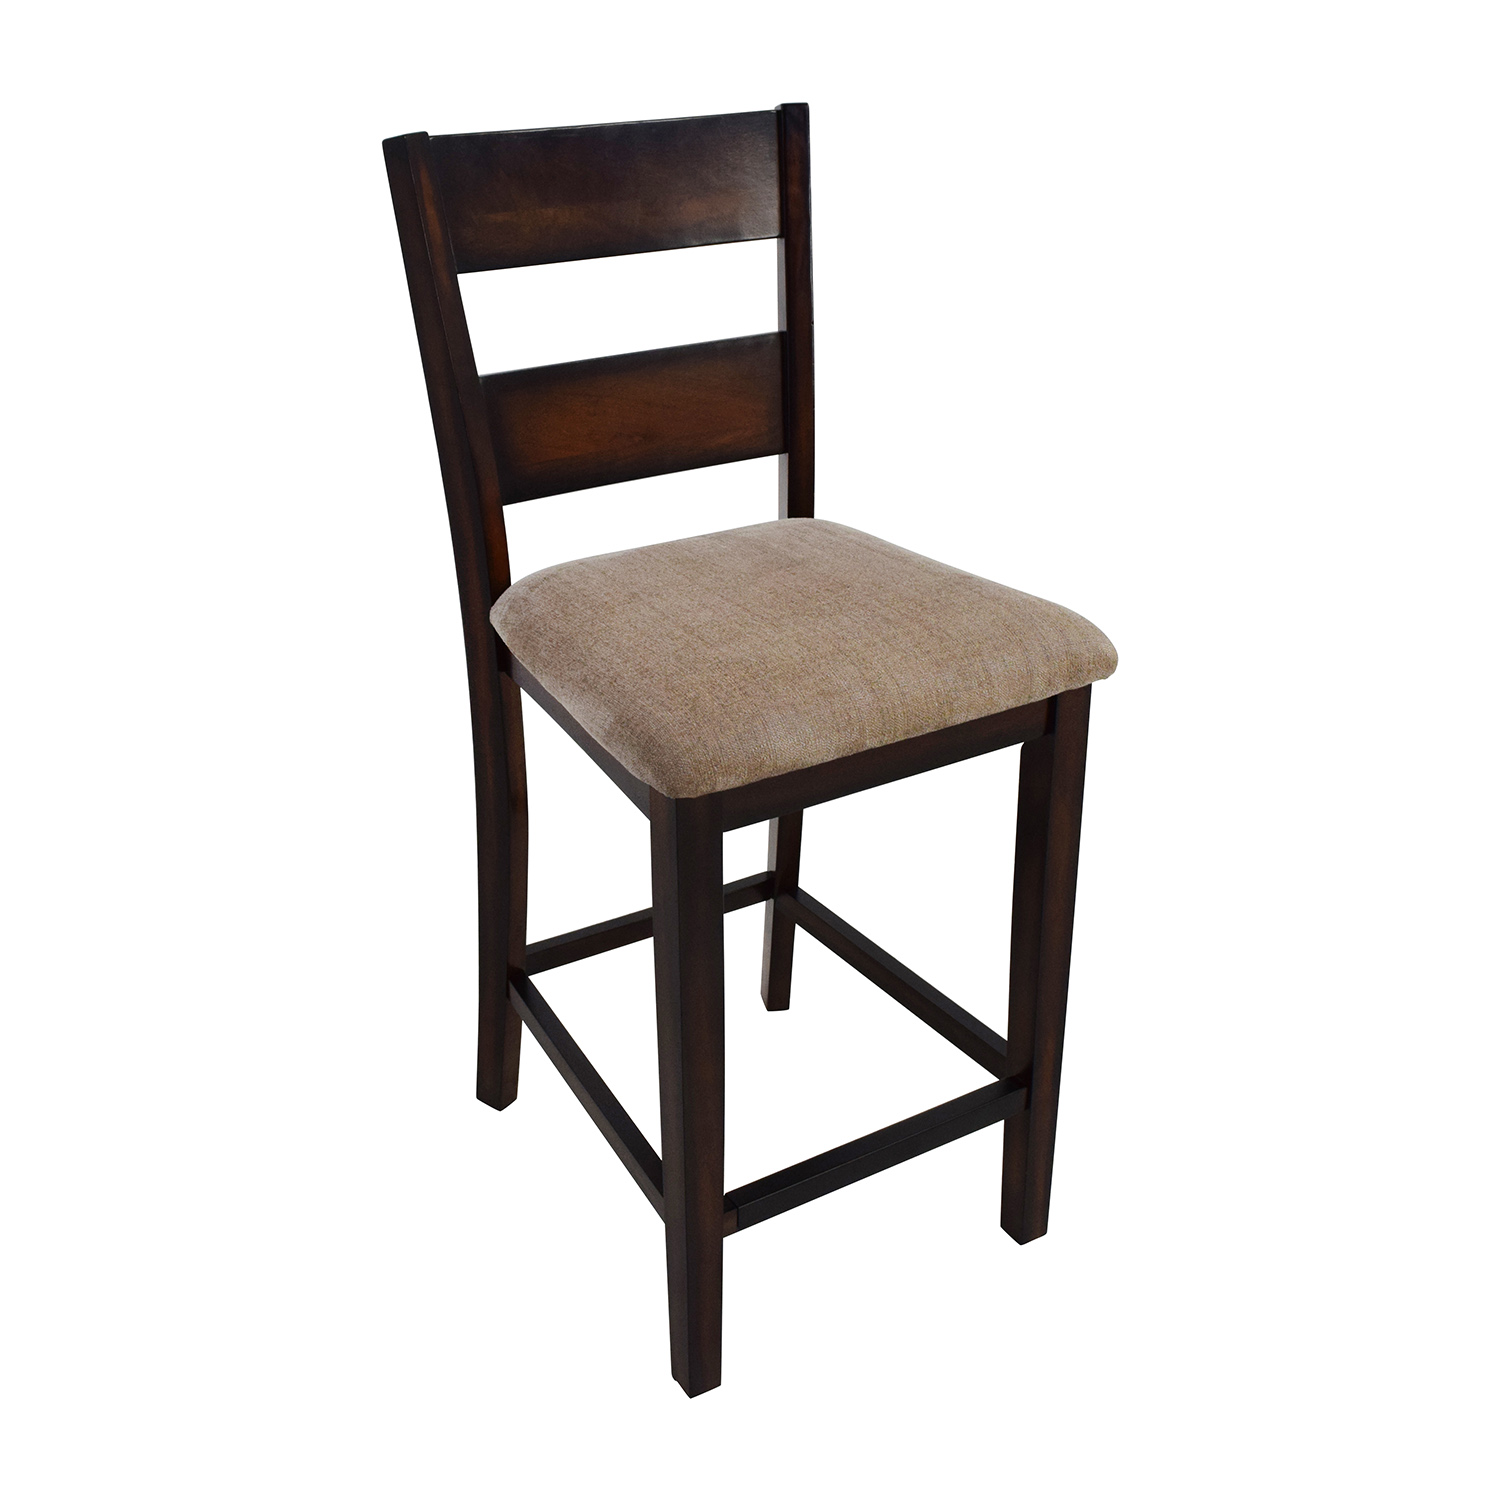 73 off macy 39 s macy 39 s branton counter height table with chairs tables. Black Bedroom Furniture Sets. Home Design Ideas